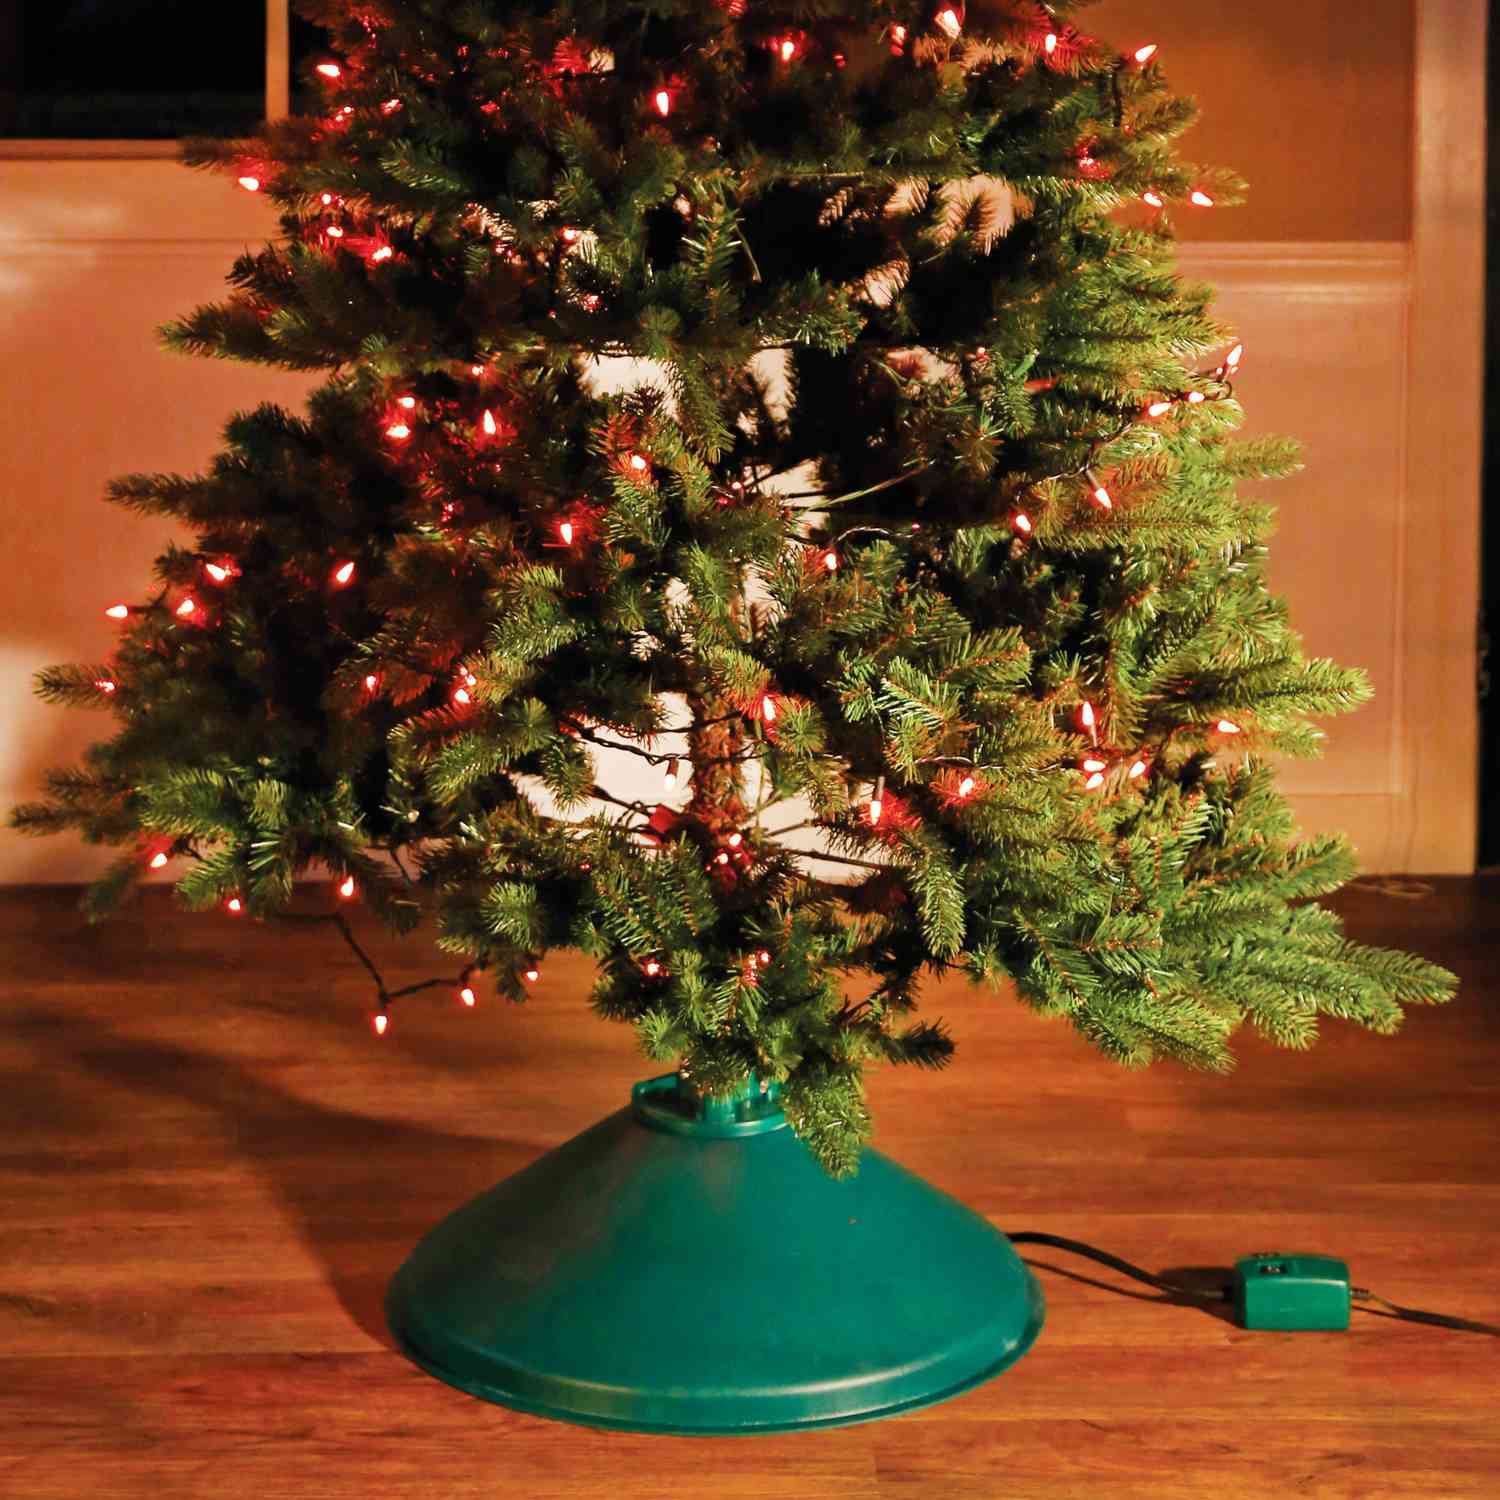 The 9 Best Christmas Tree Stands to Buy in 2019